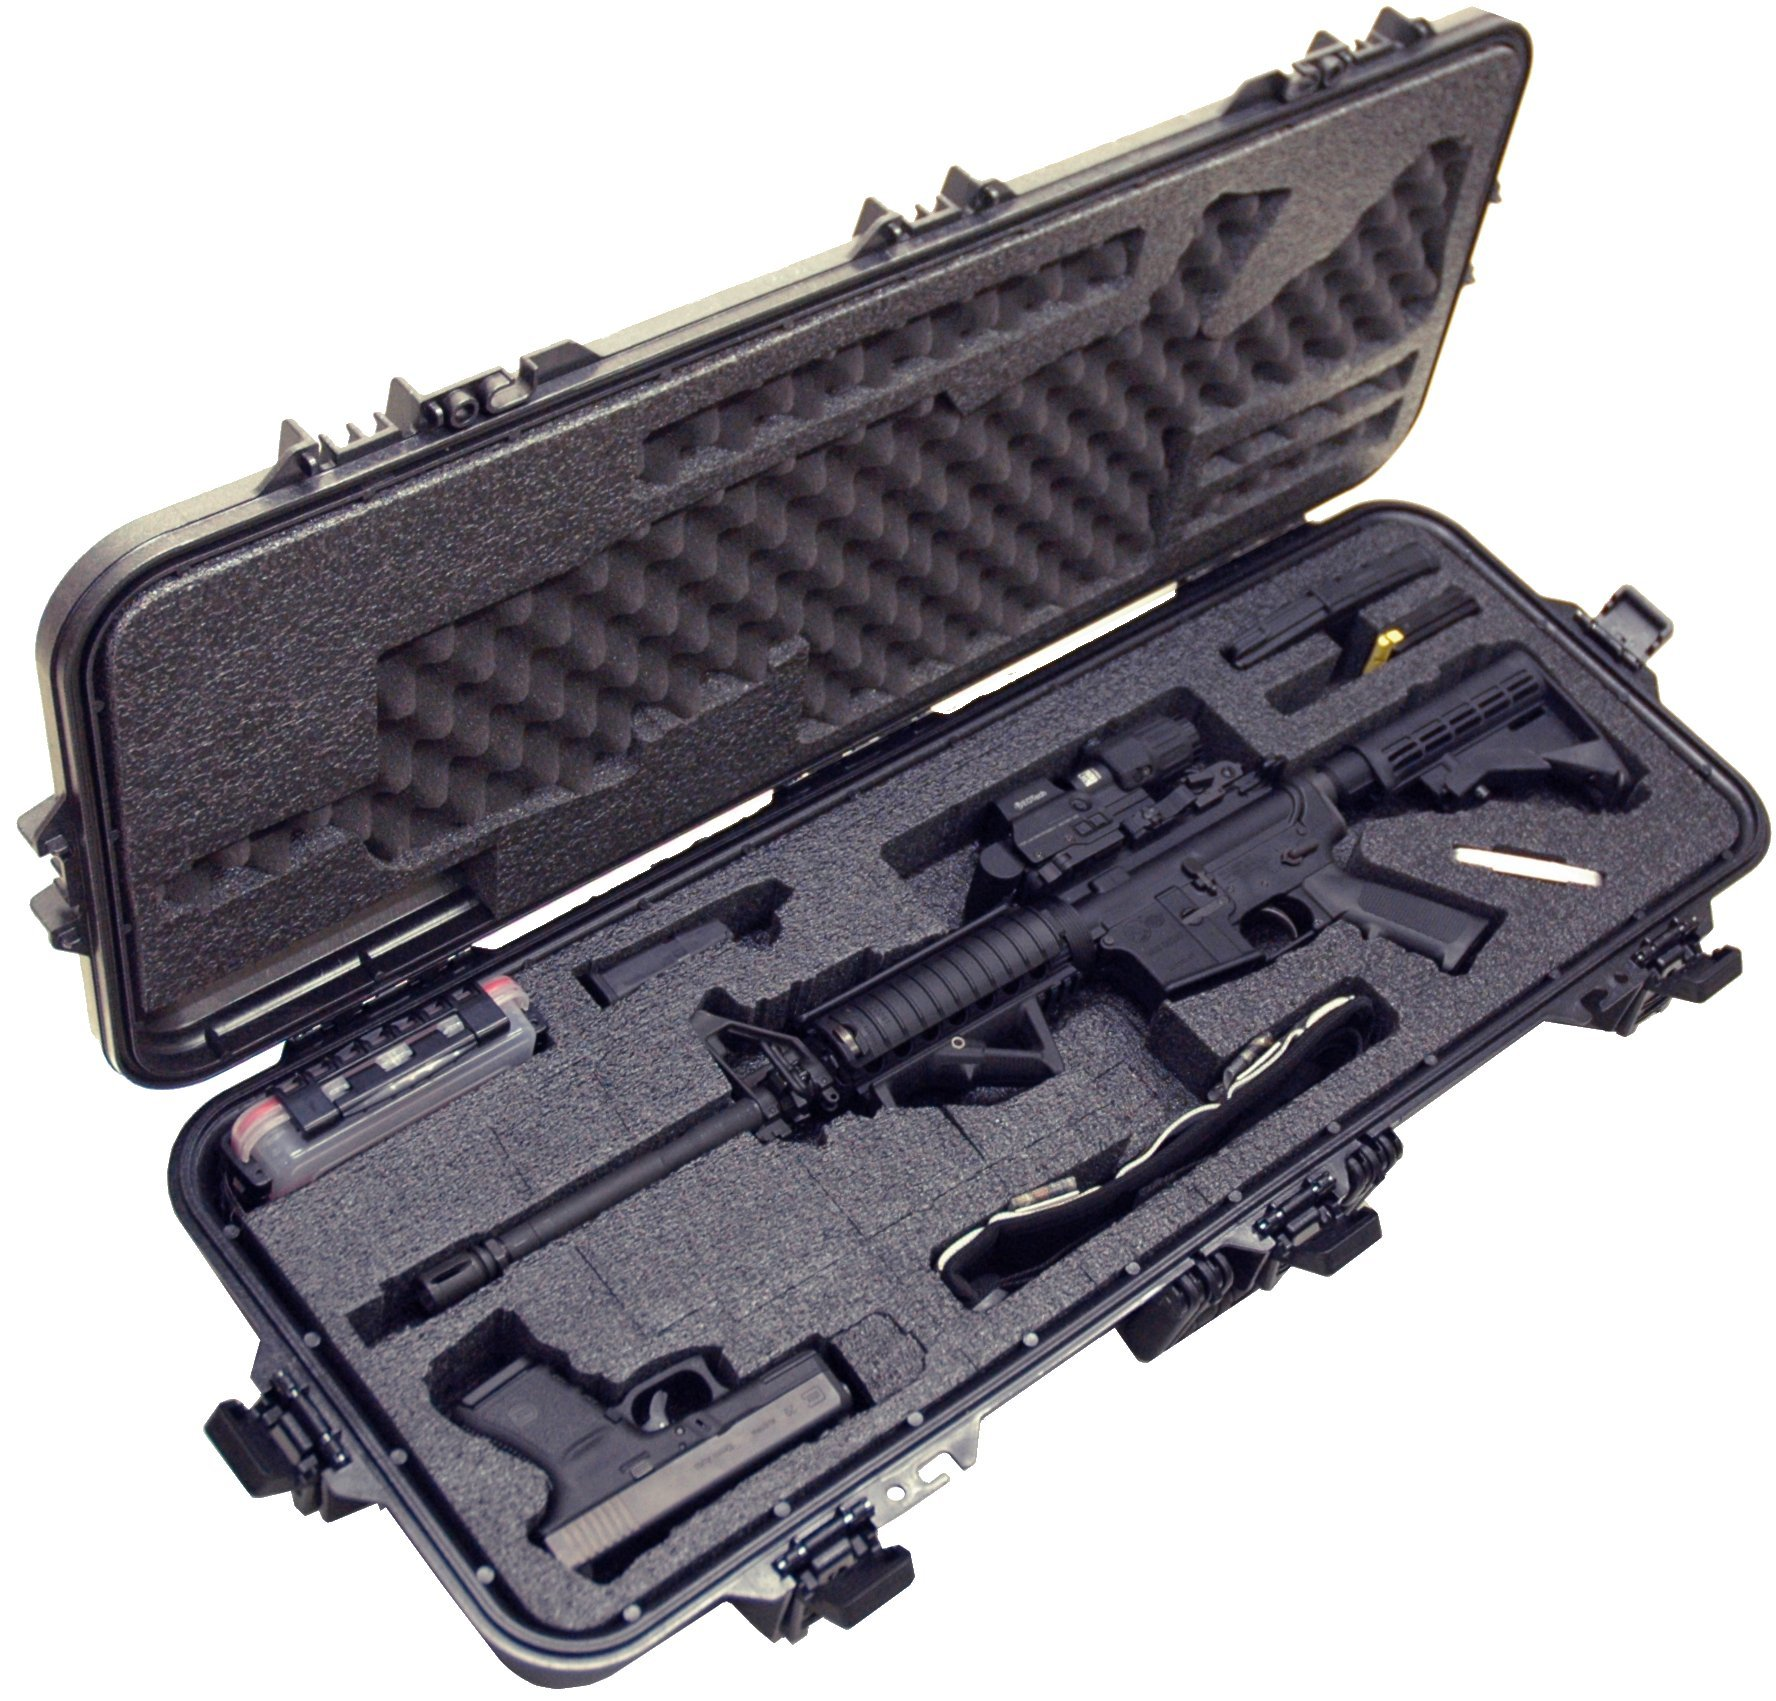 Case Club Pre-Made AR15 Waterproof Rifle Case with Silica Gel & Accessory Box by Case Club